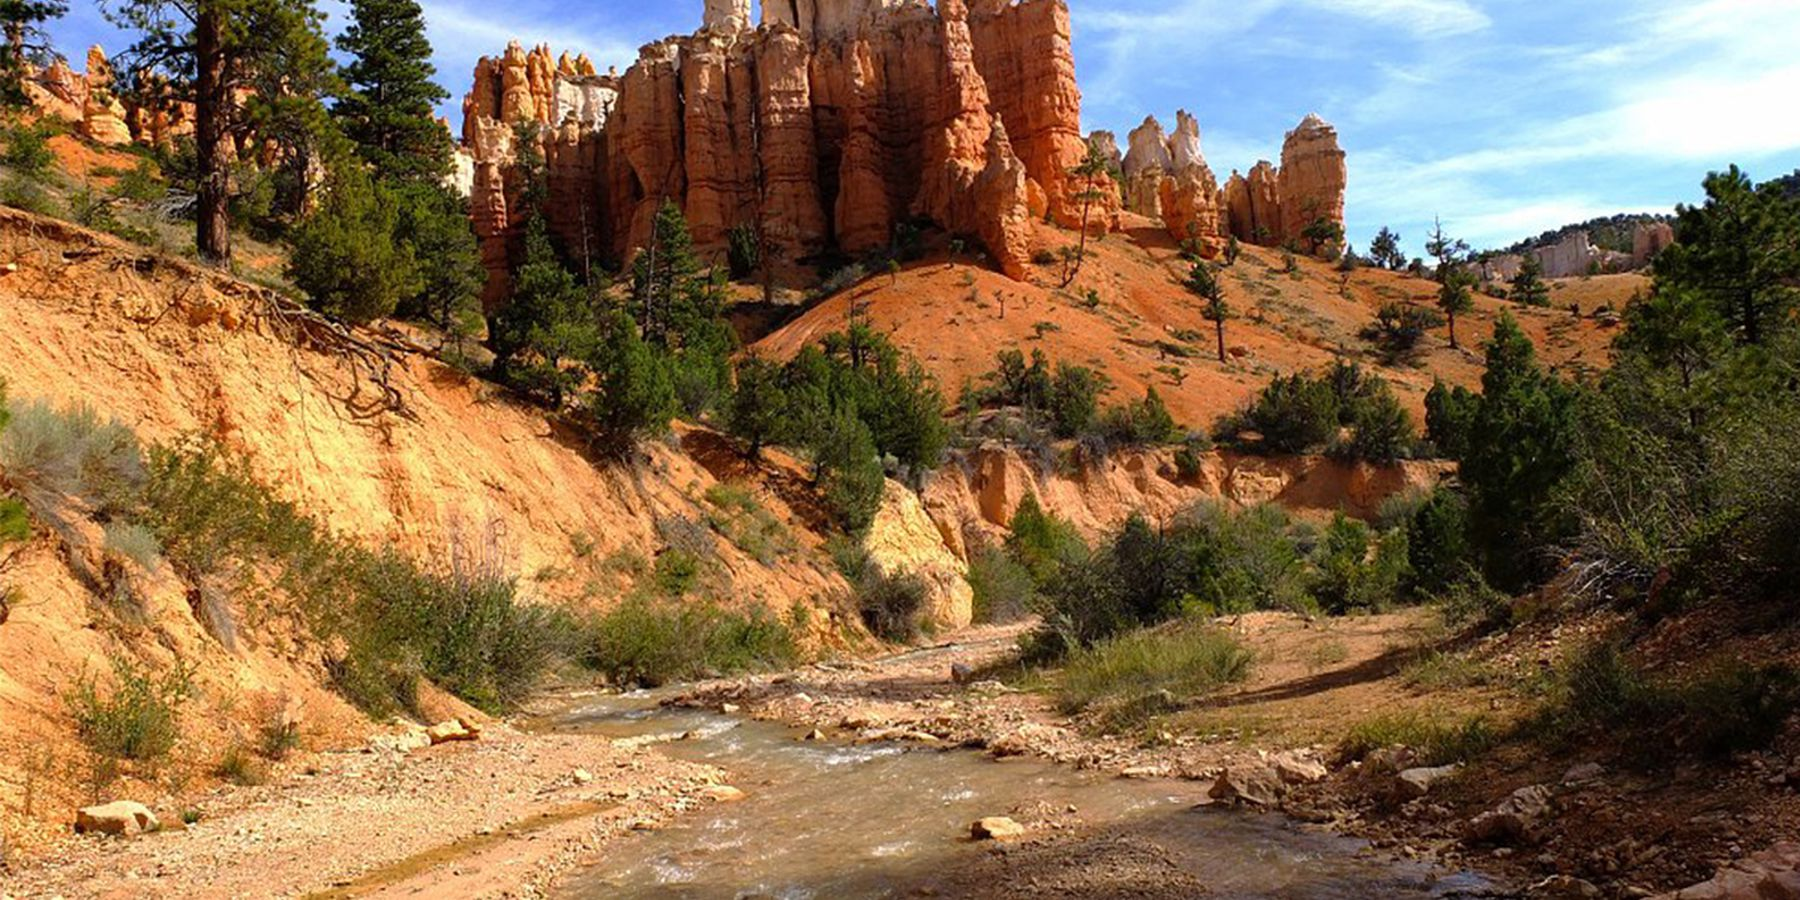 Mossy Cave Trail in Bryce Canyon - Doets Reizen - Rondreis Amerika - Fotocredits NPS